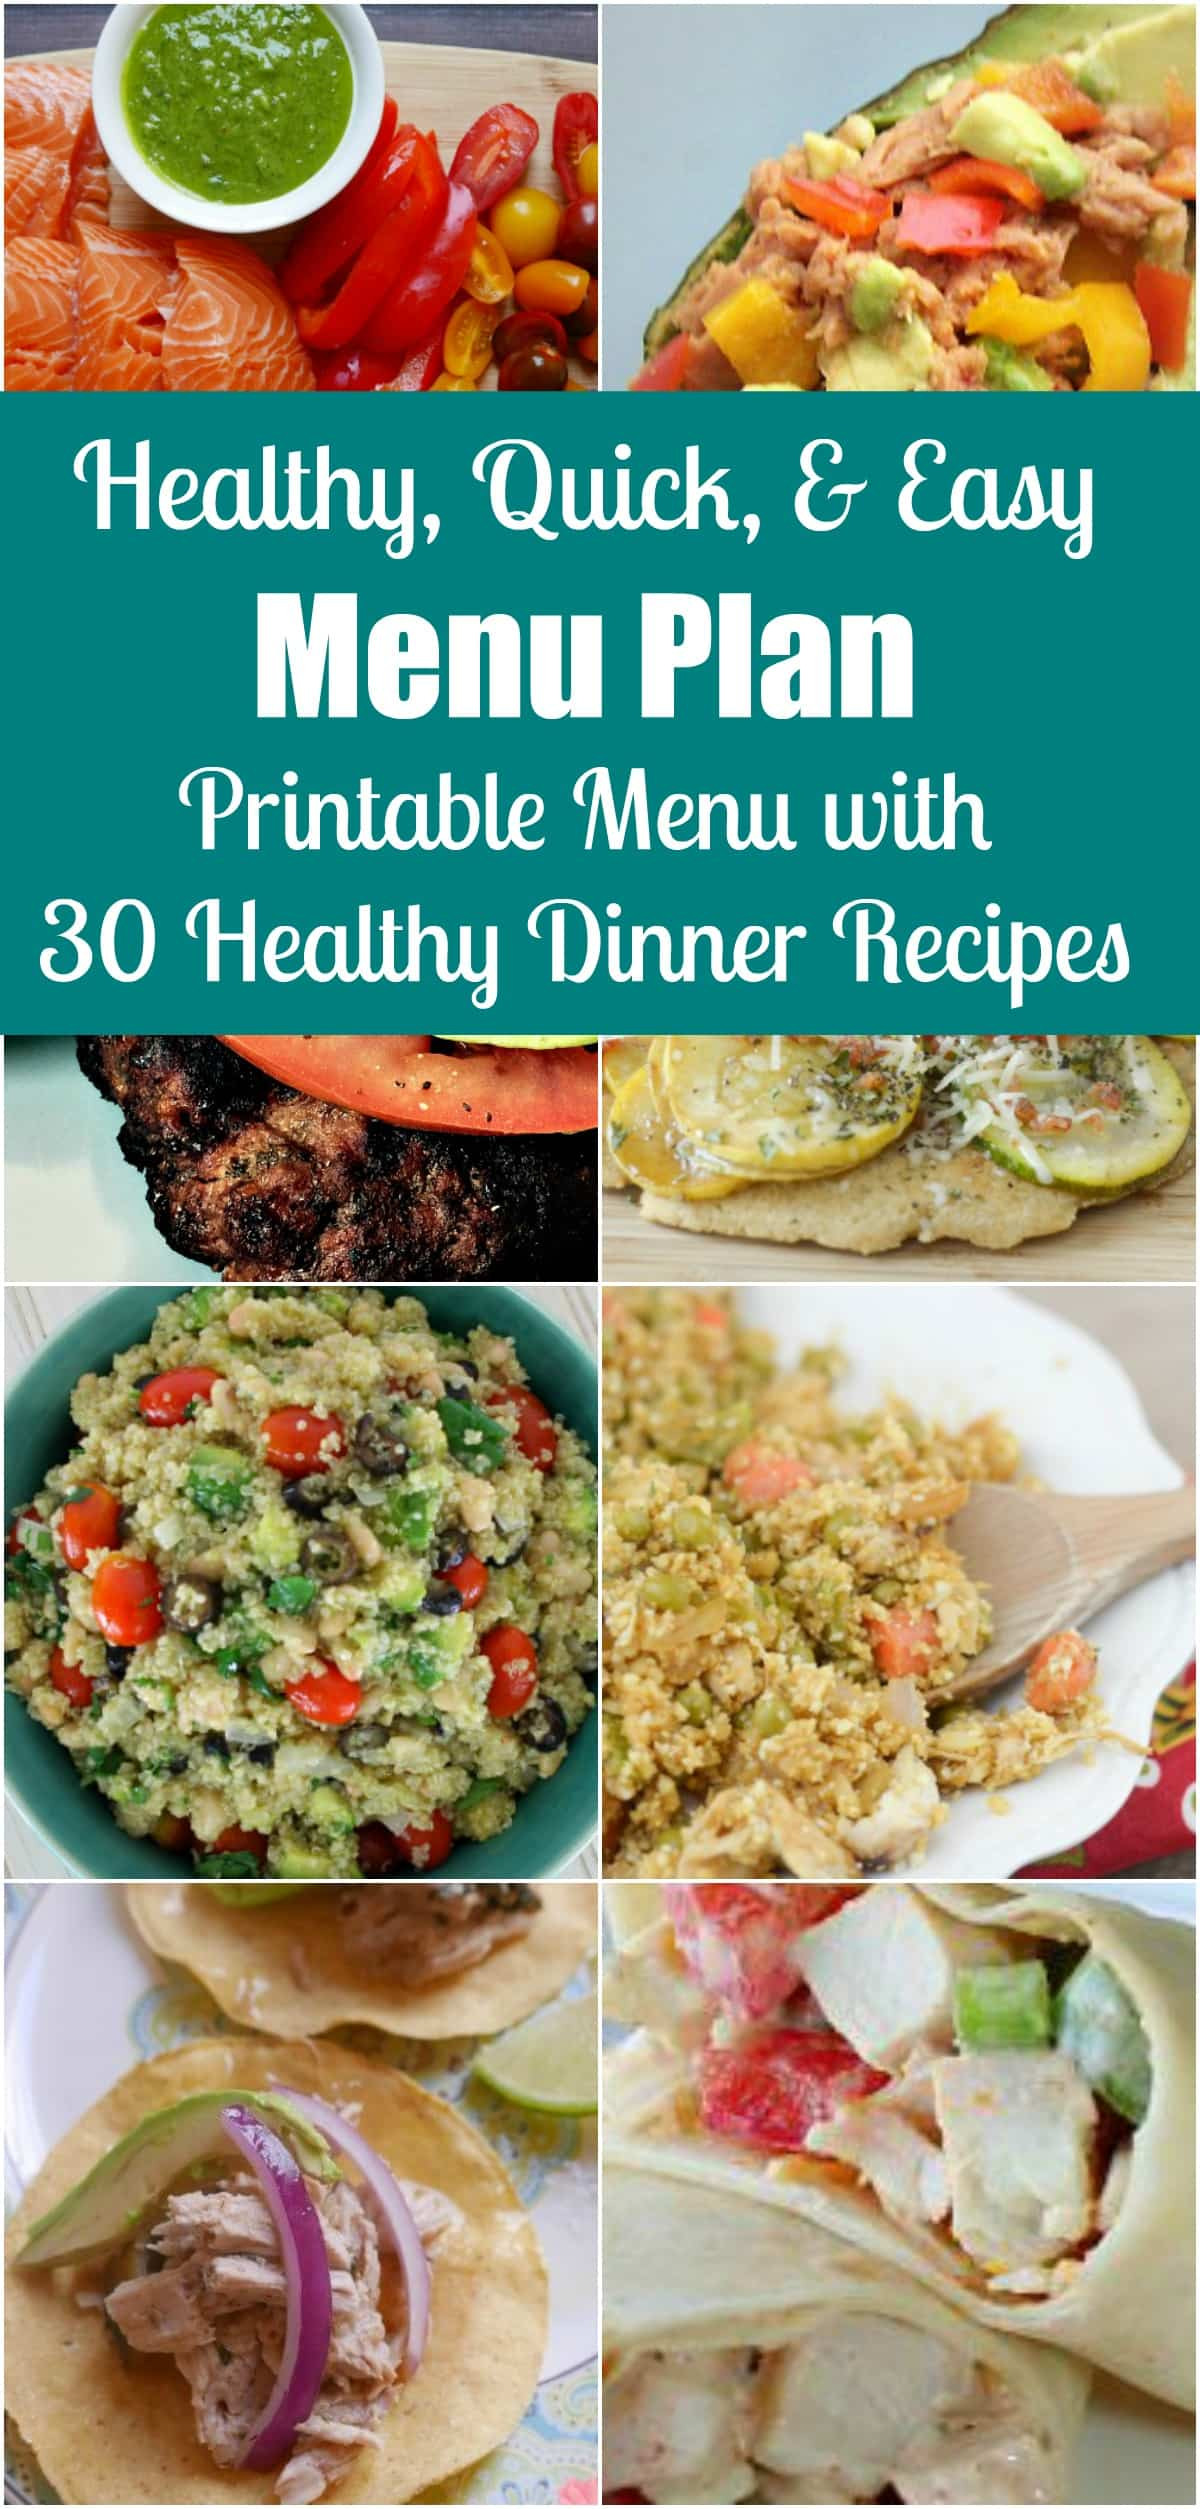 Fast Healthy Dinners For Family  Quick Easy & Healthy Dinner Menu Plan 30 Simple Recipes